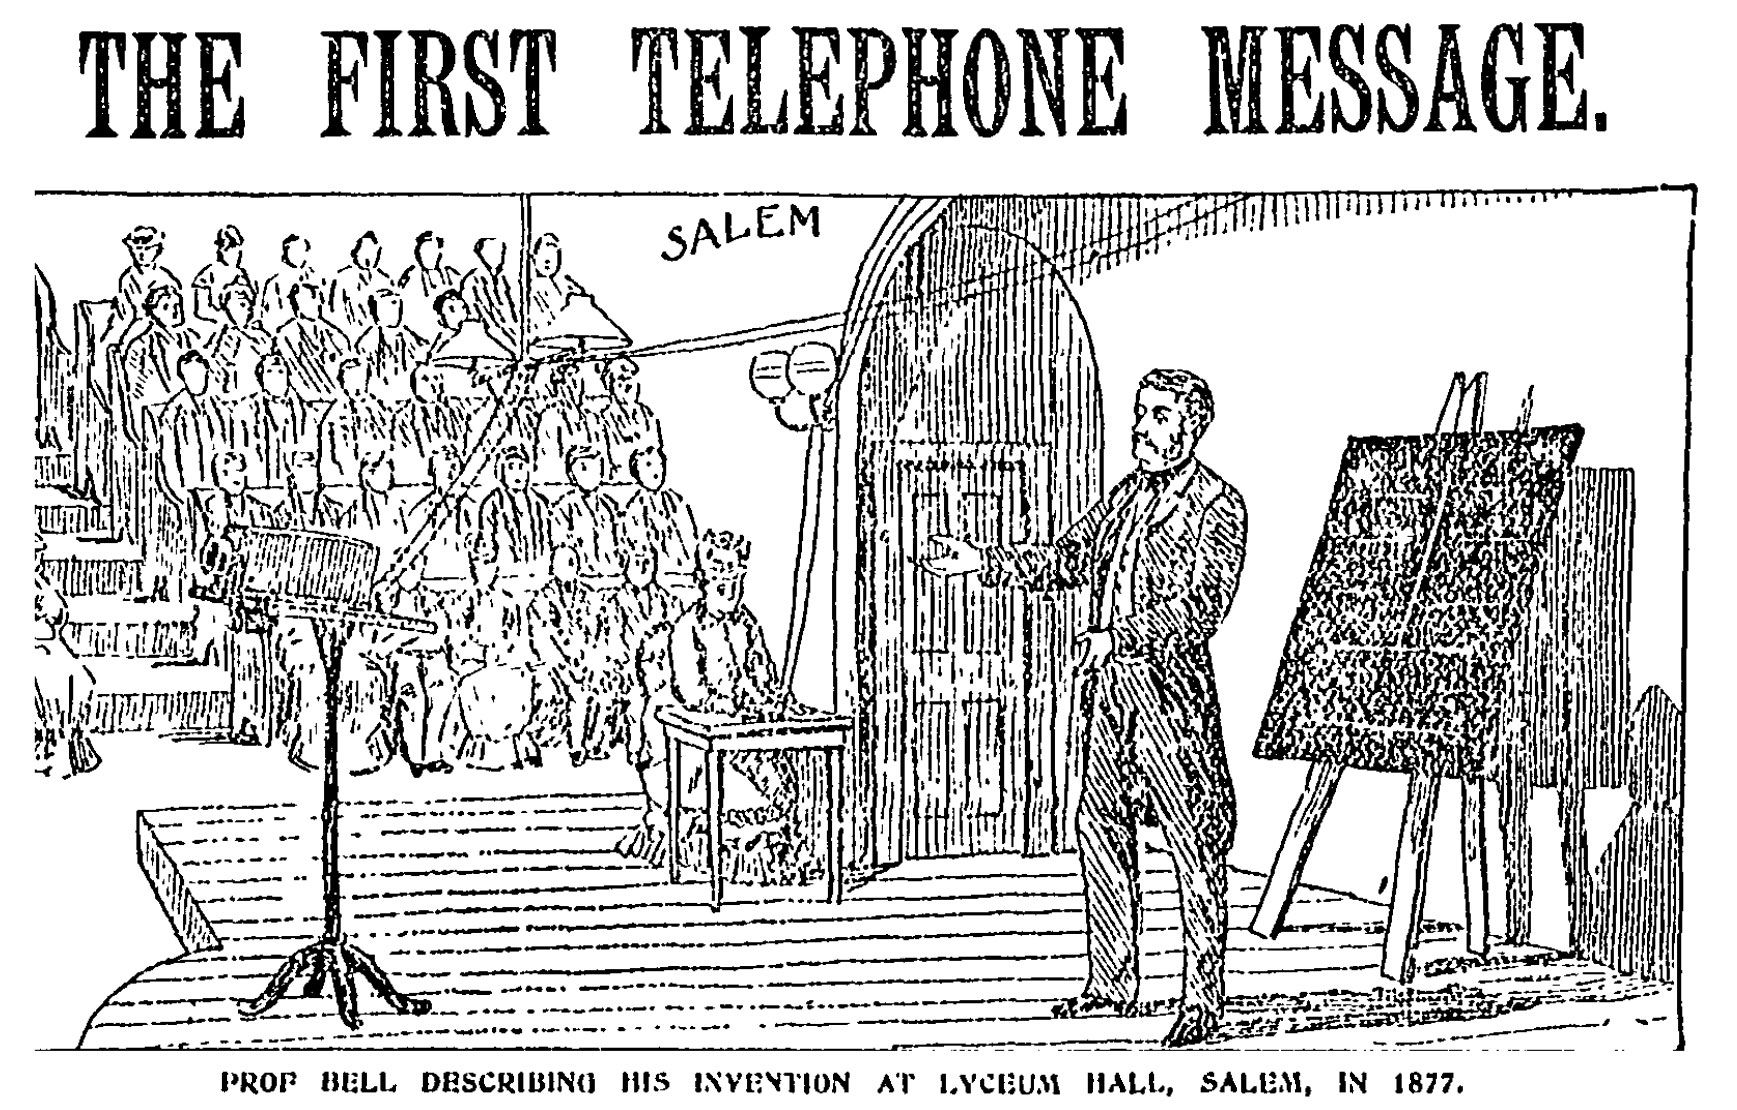 142 years ago, Alexander Graham Bell made the 'first